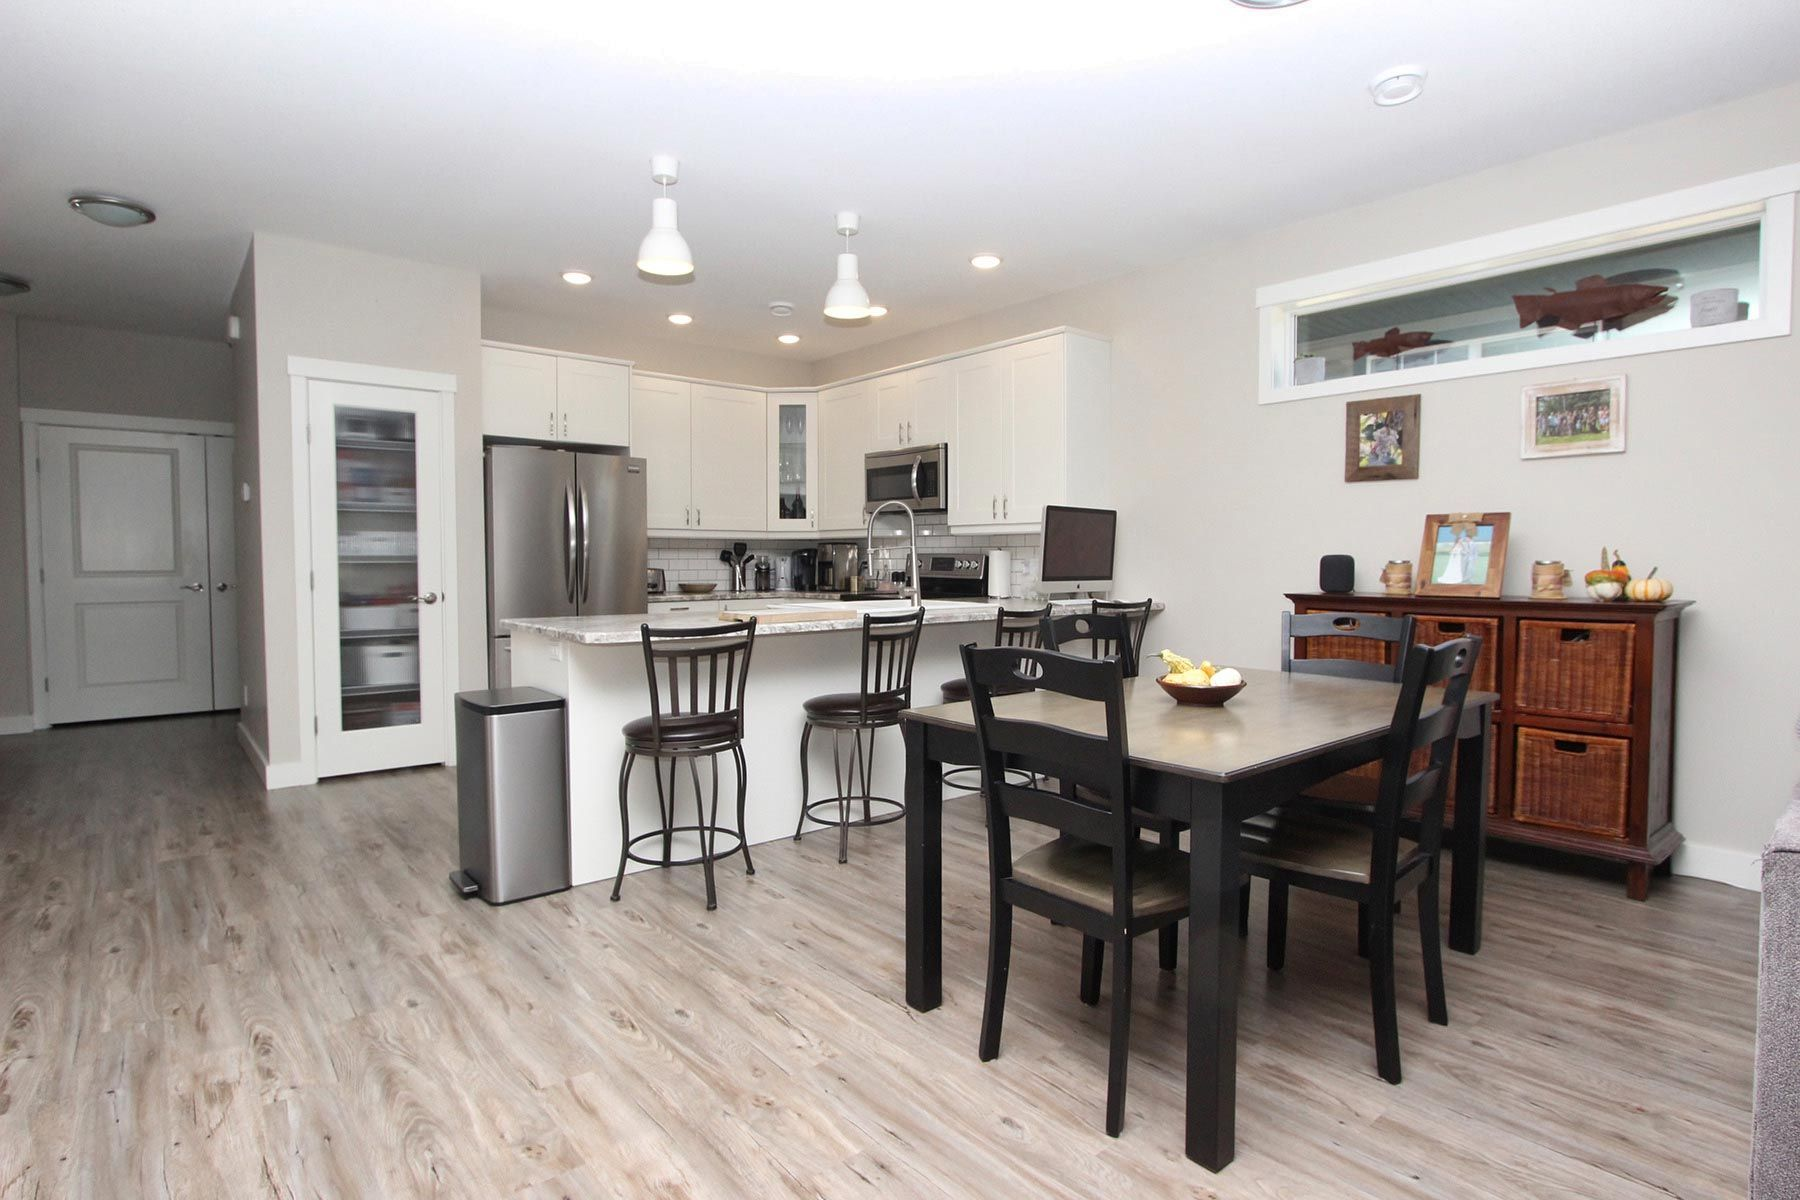 Photo 22: Photos: 199 Ash Drive in Chase: House for sale : MLS®# 10223046